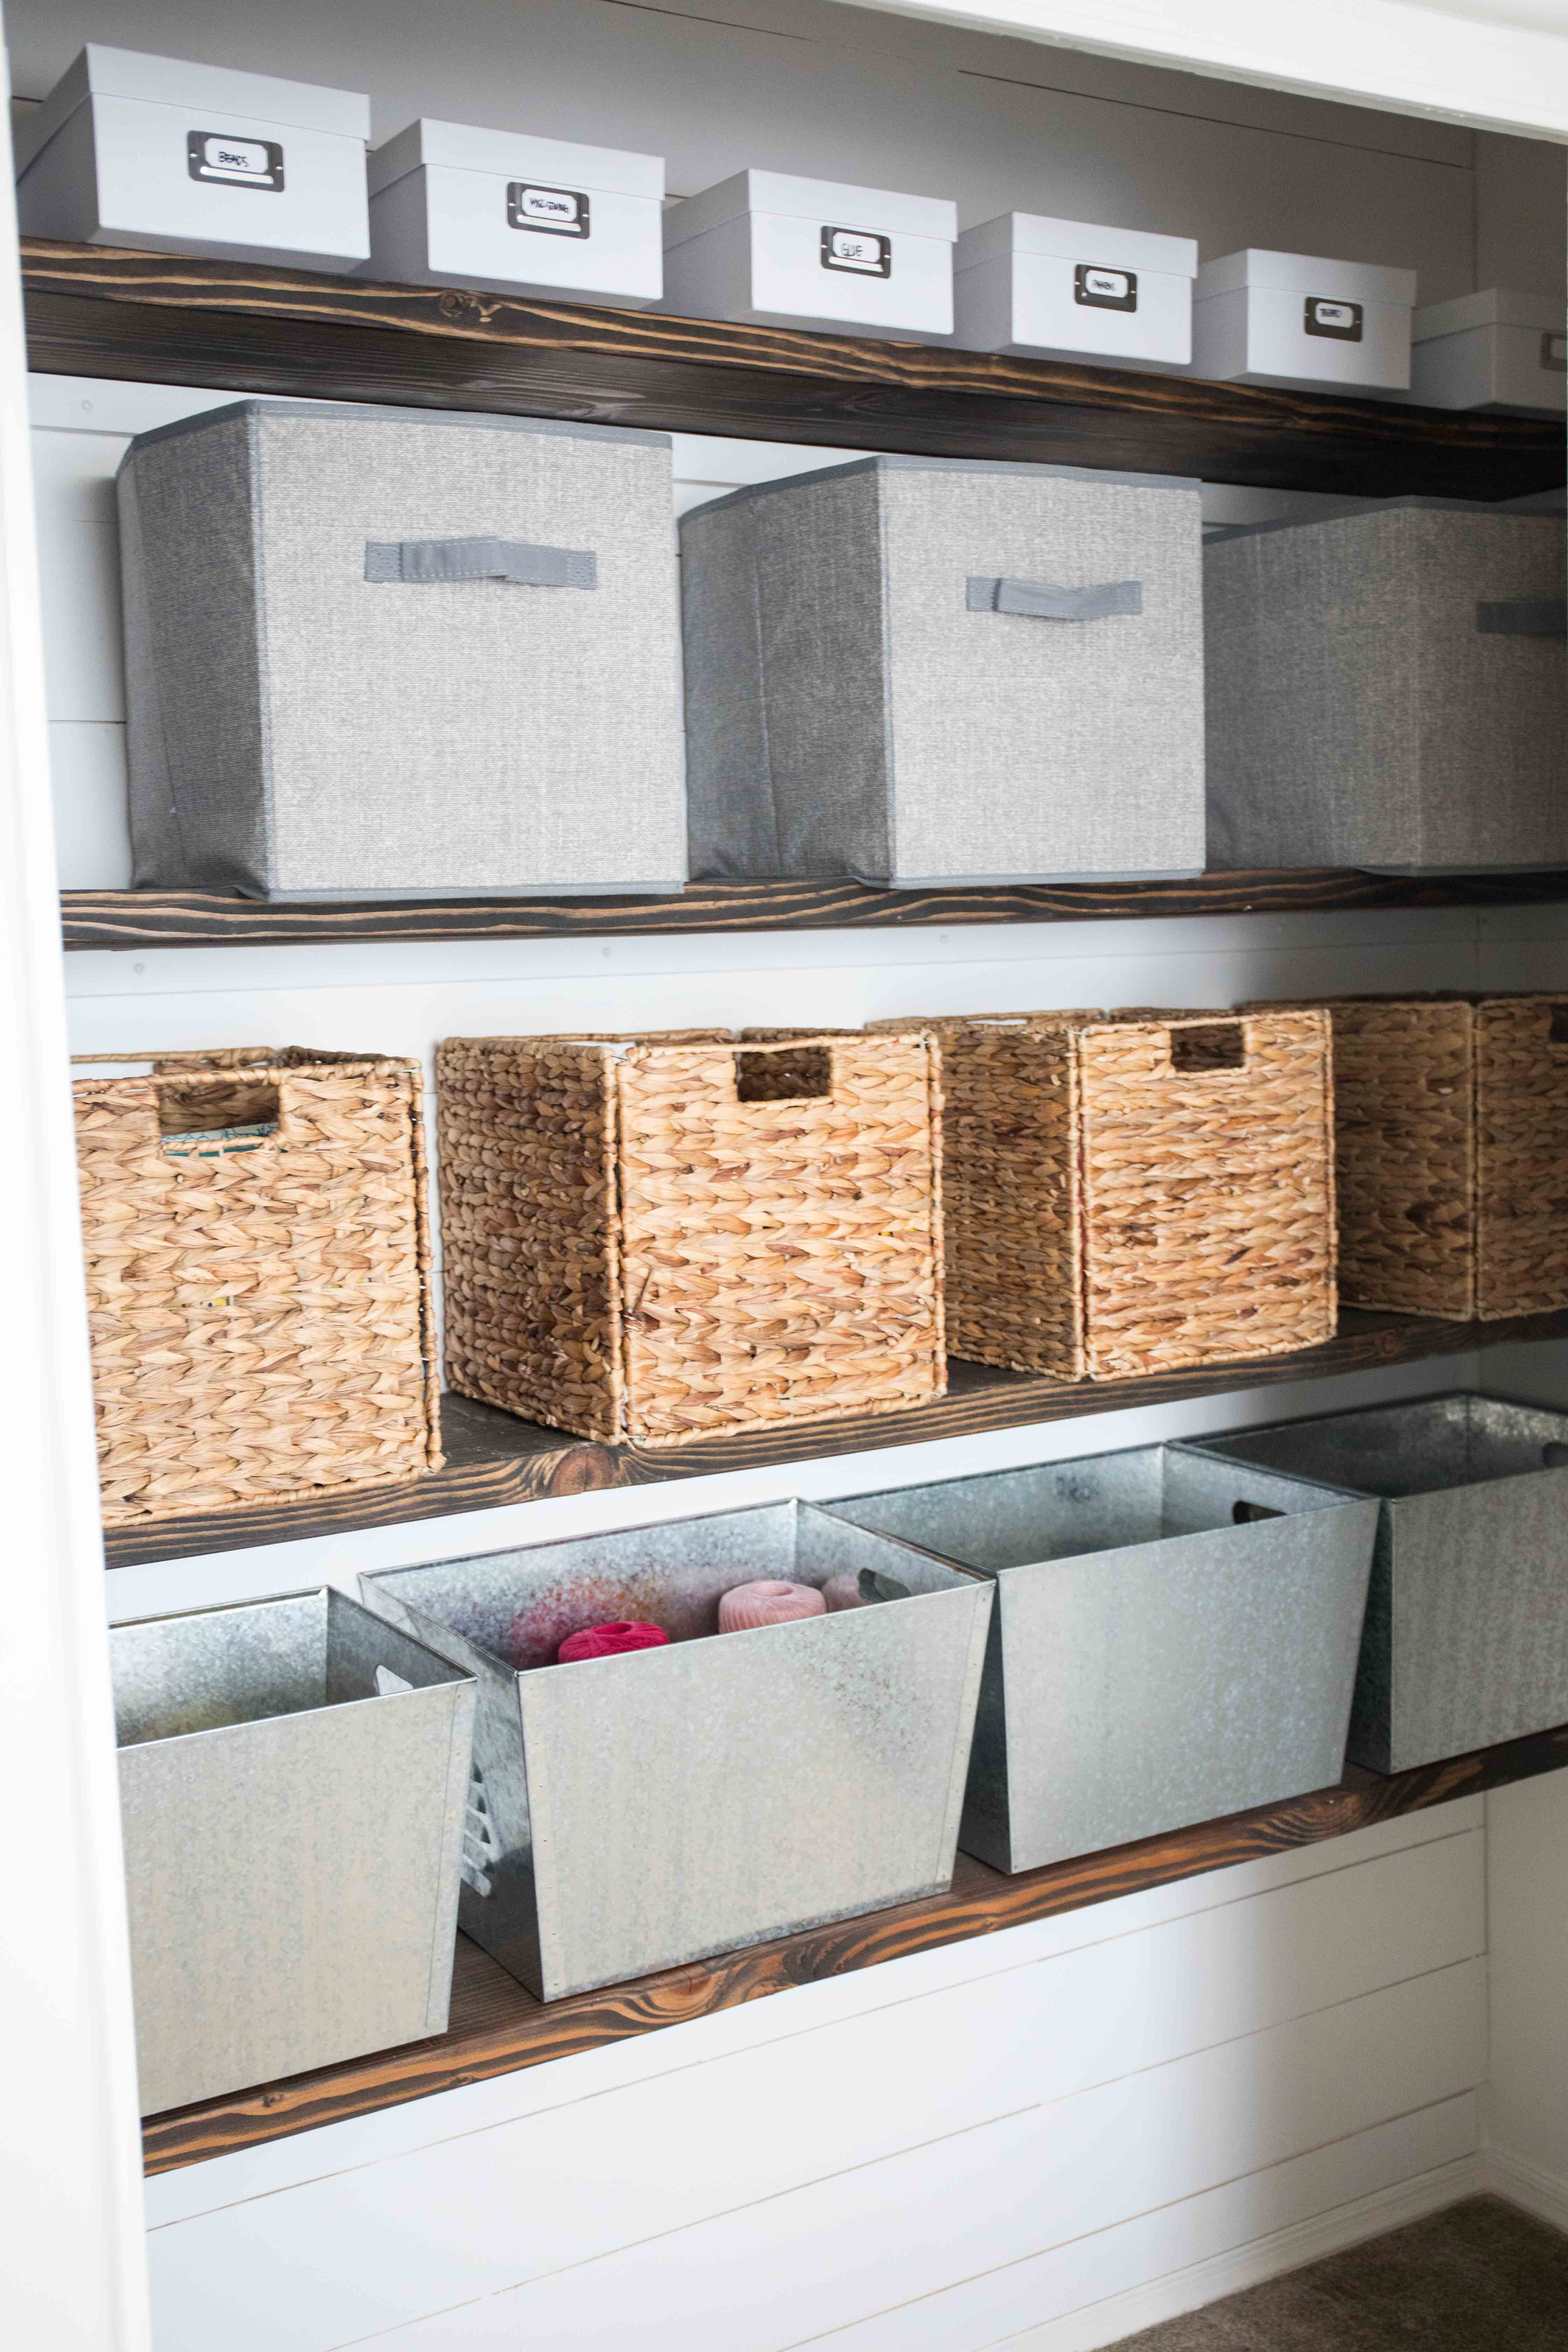 Craft Organization Ideas How To Organize Your Craft Supplies Closet  Organization Ideas